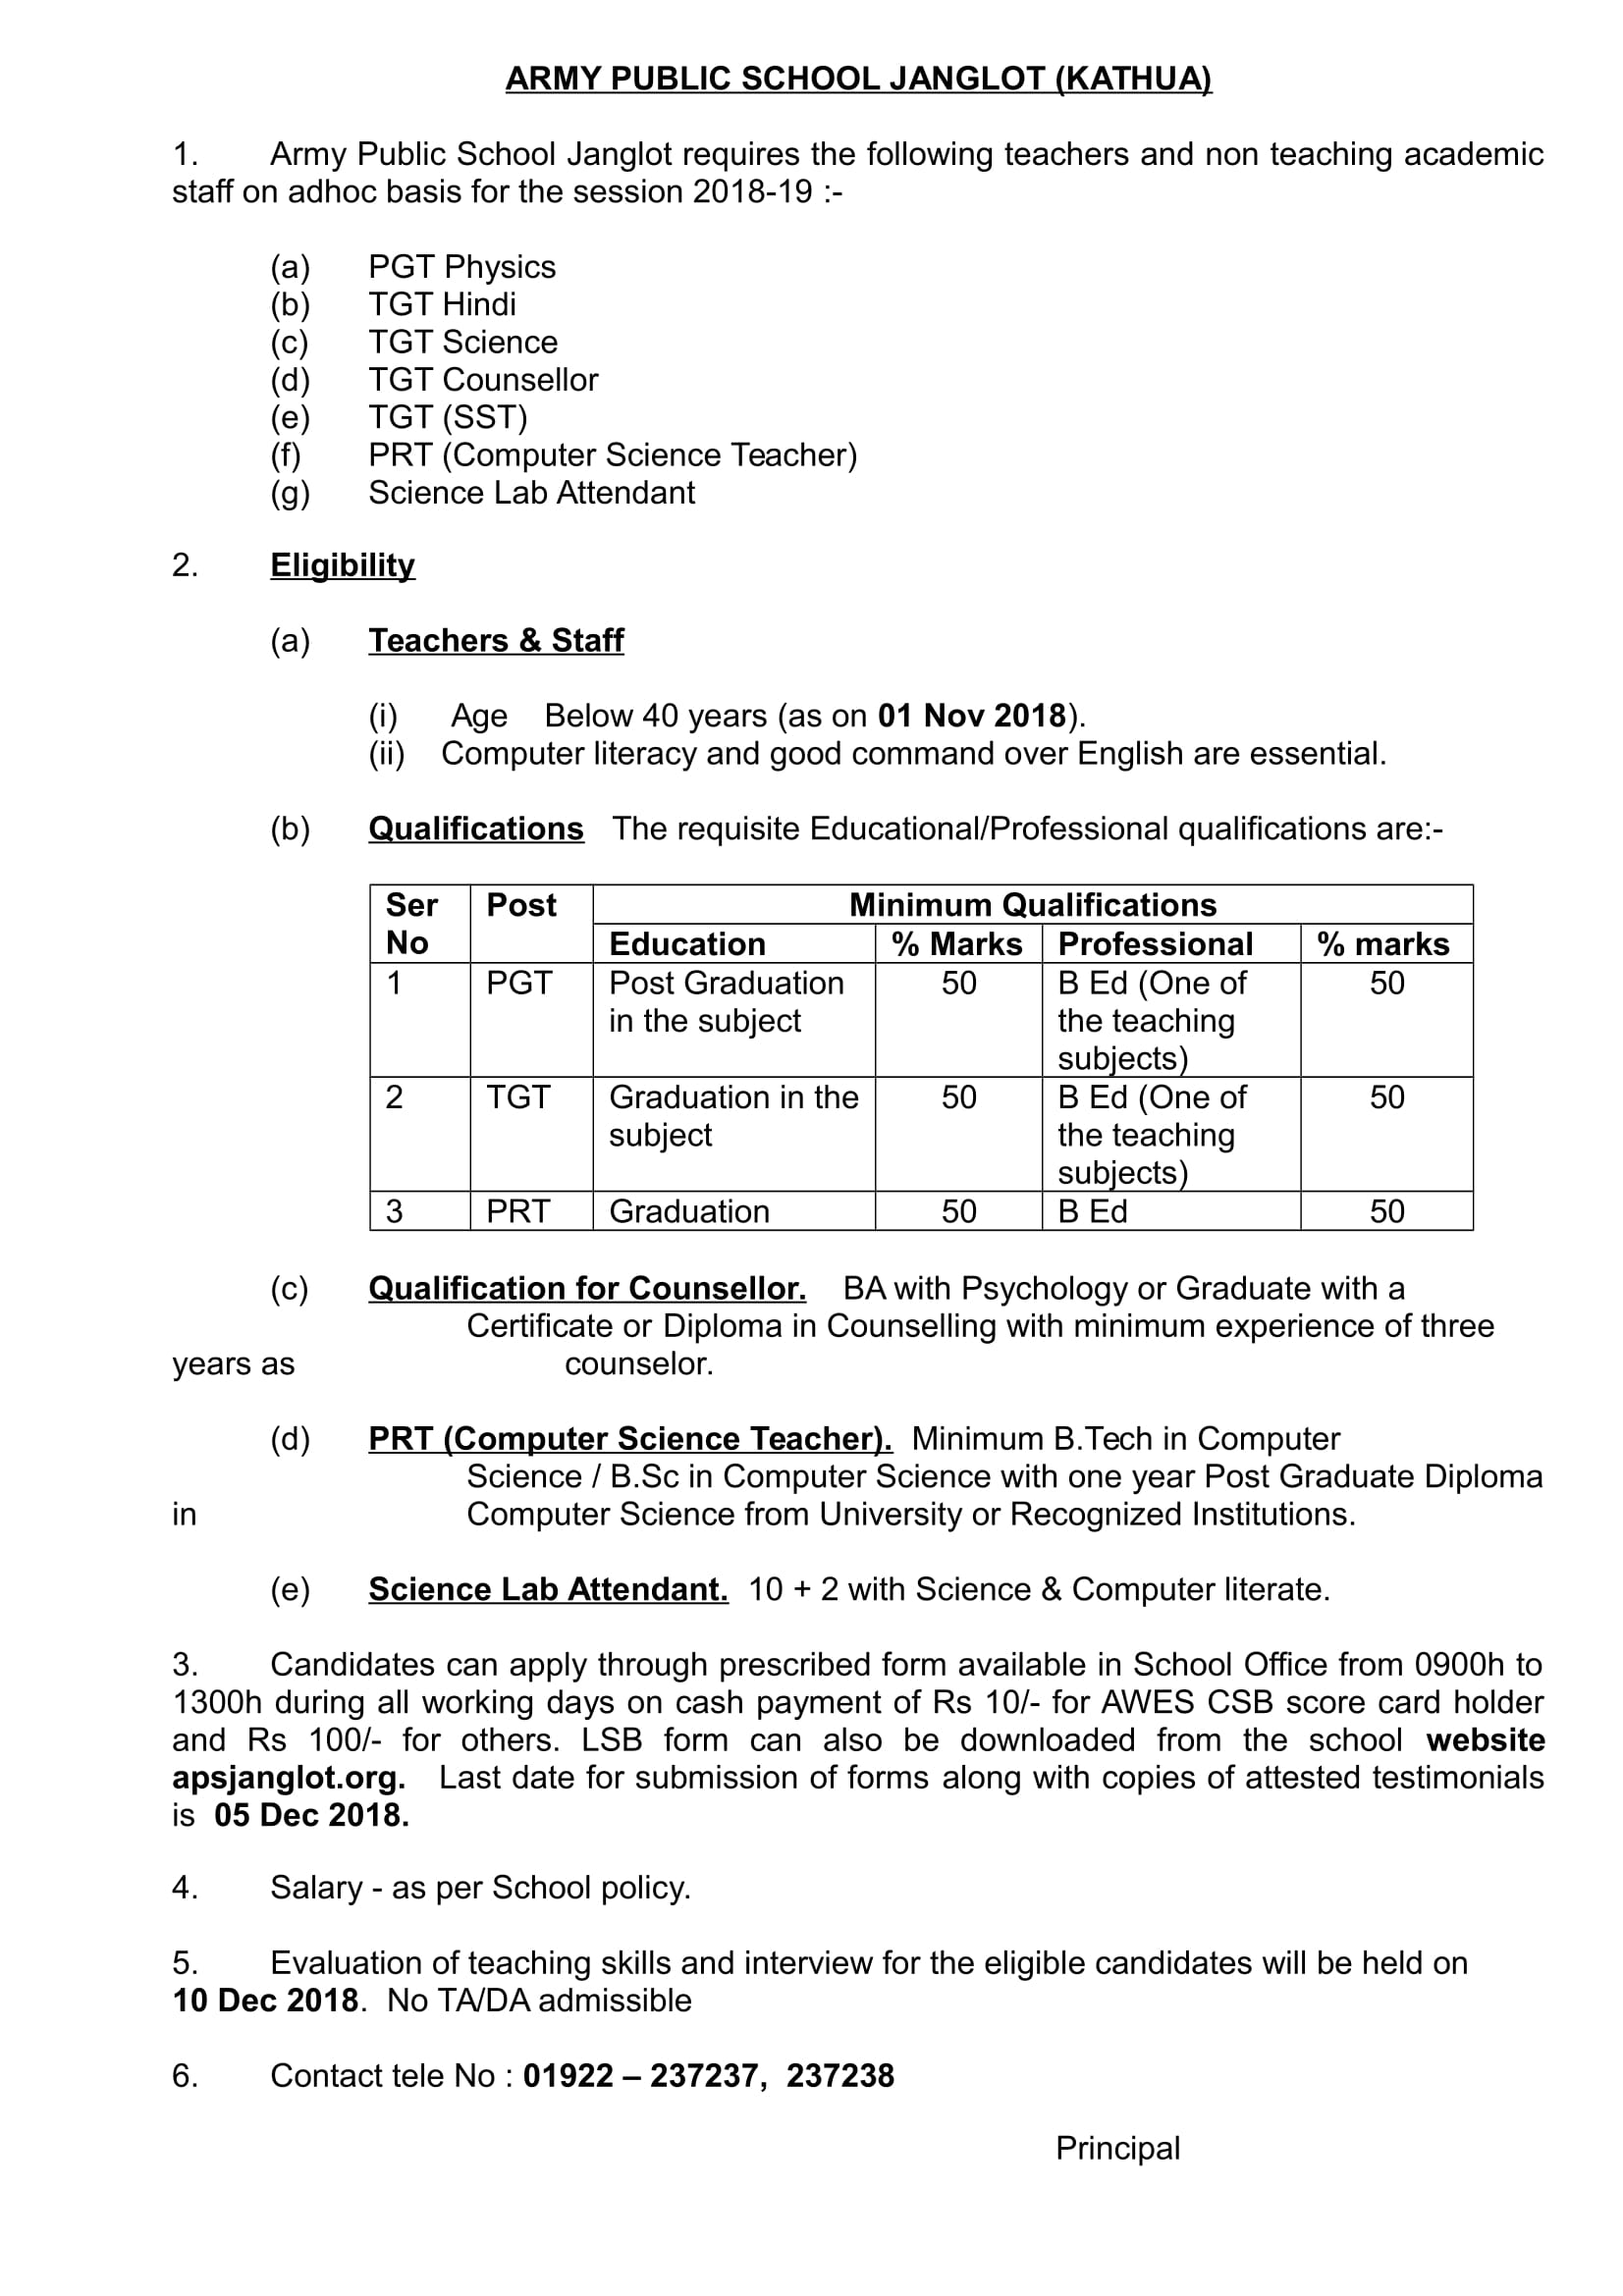 1a6db05e790 Army Public School Janglot Teacher & Staff 2018 Job Notification